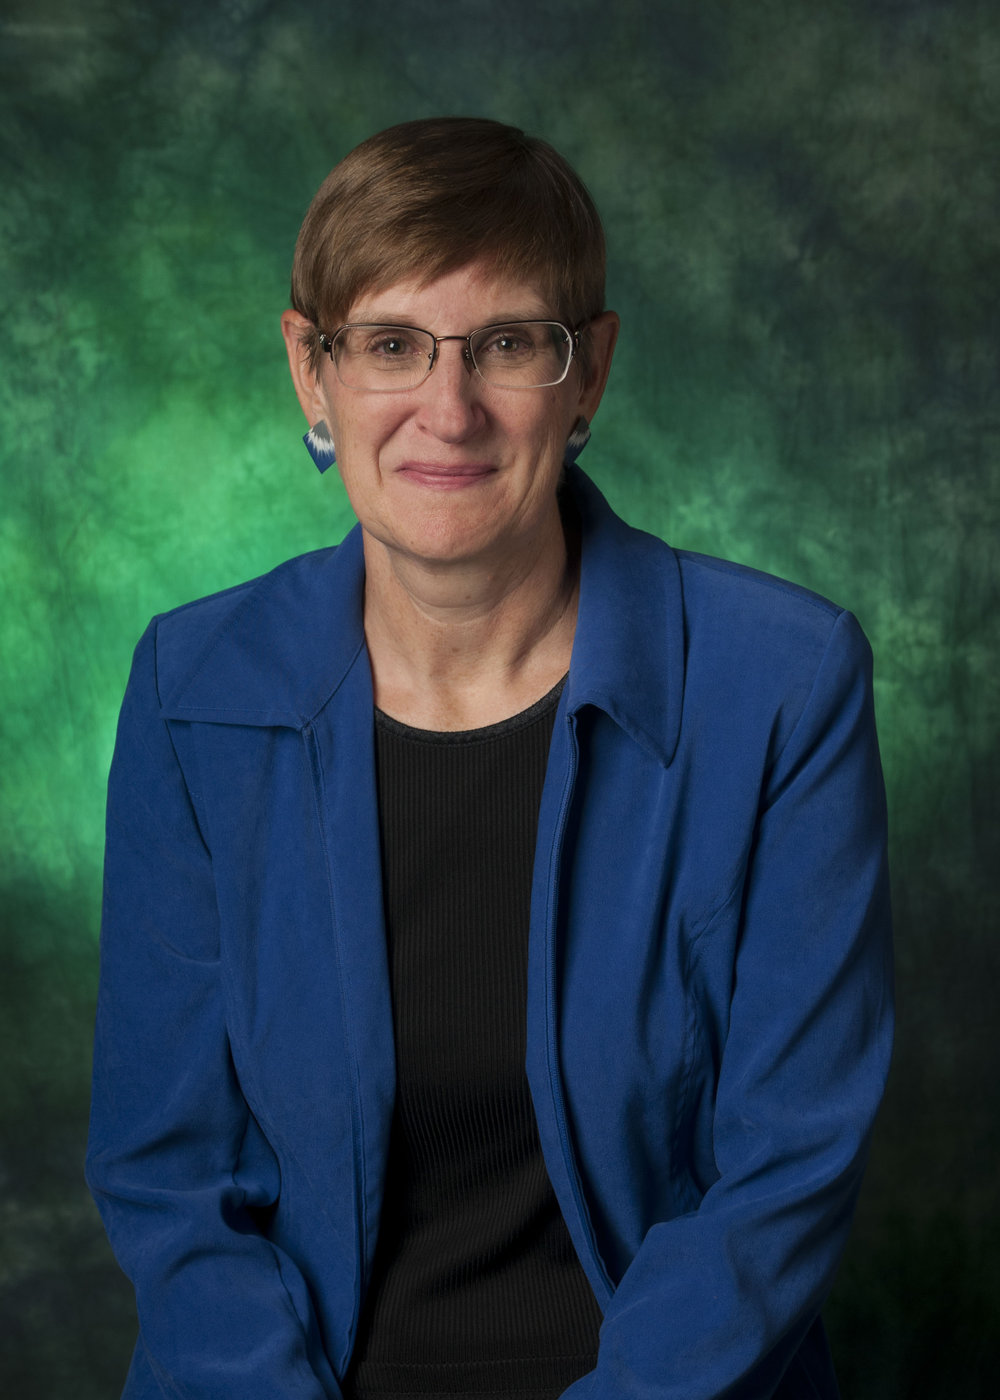 CPSH Director, College Relations Liaison - Peggy ShadduckConnect on LinkedIn